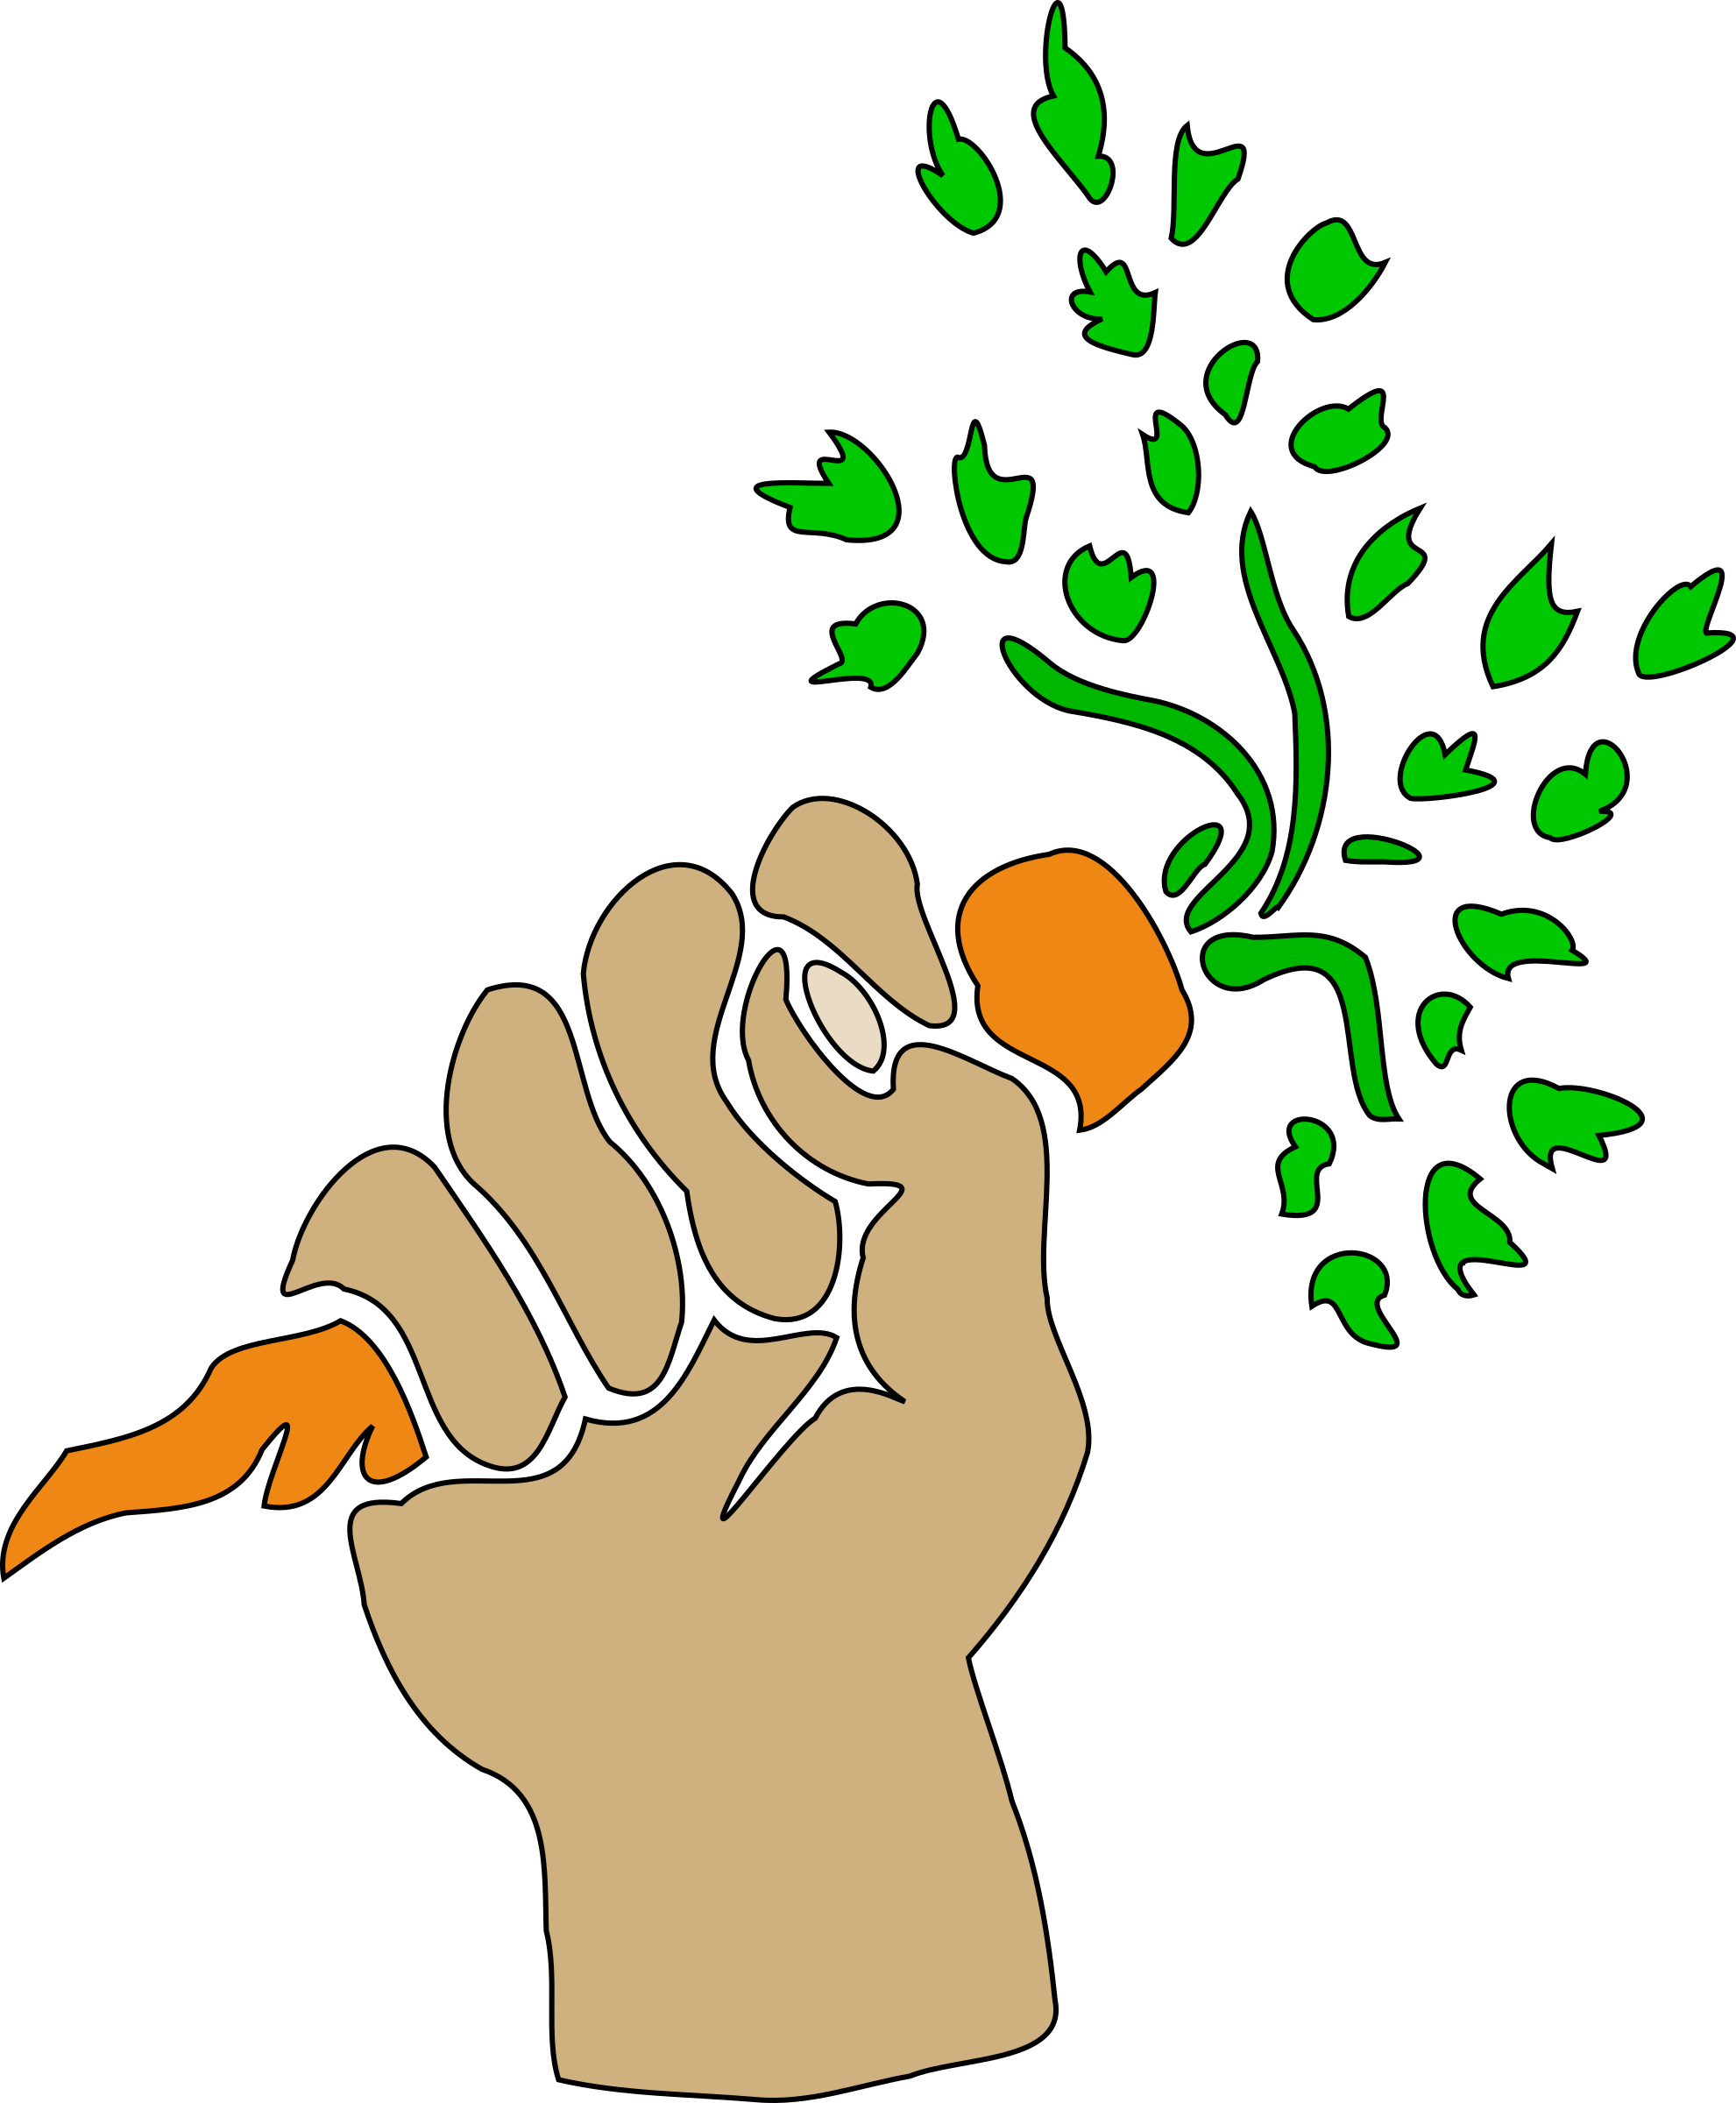 Tree clipart hand holding. Carrot big image png